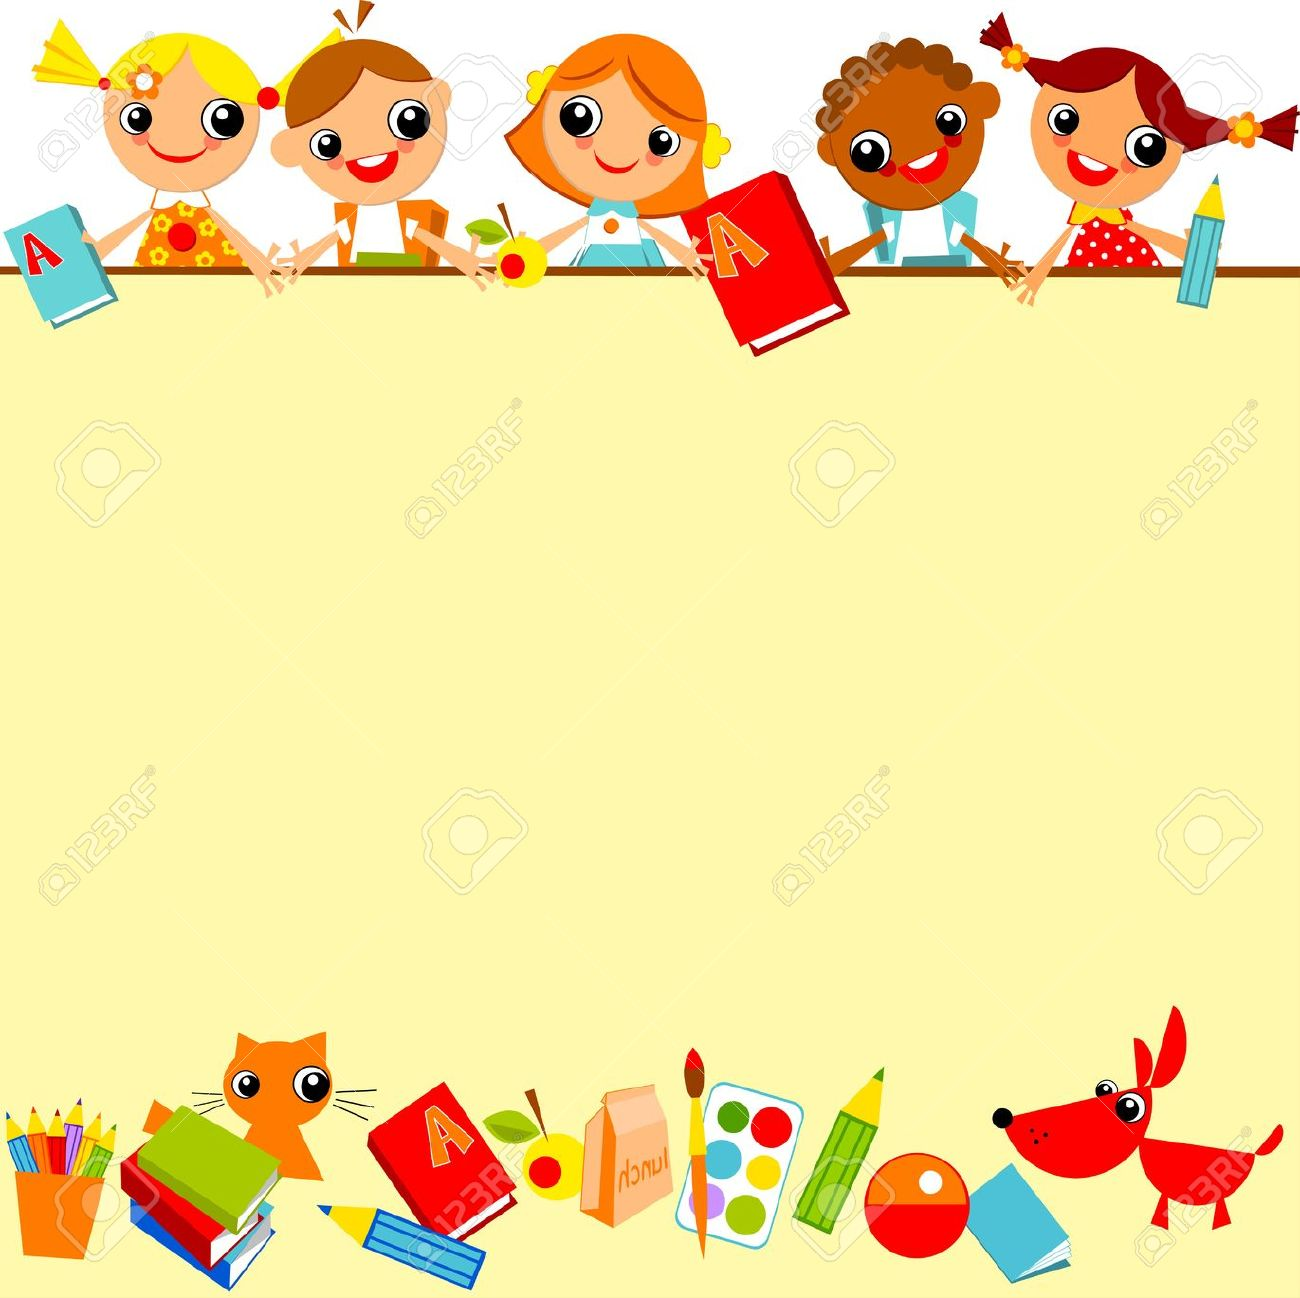 cute school clipart horizontal border 20 free Cliparts   Download images on Clipground 2020